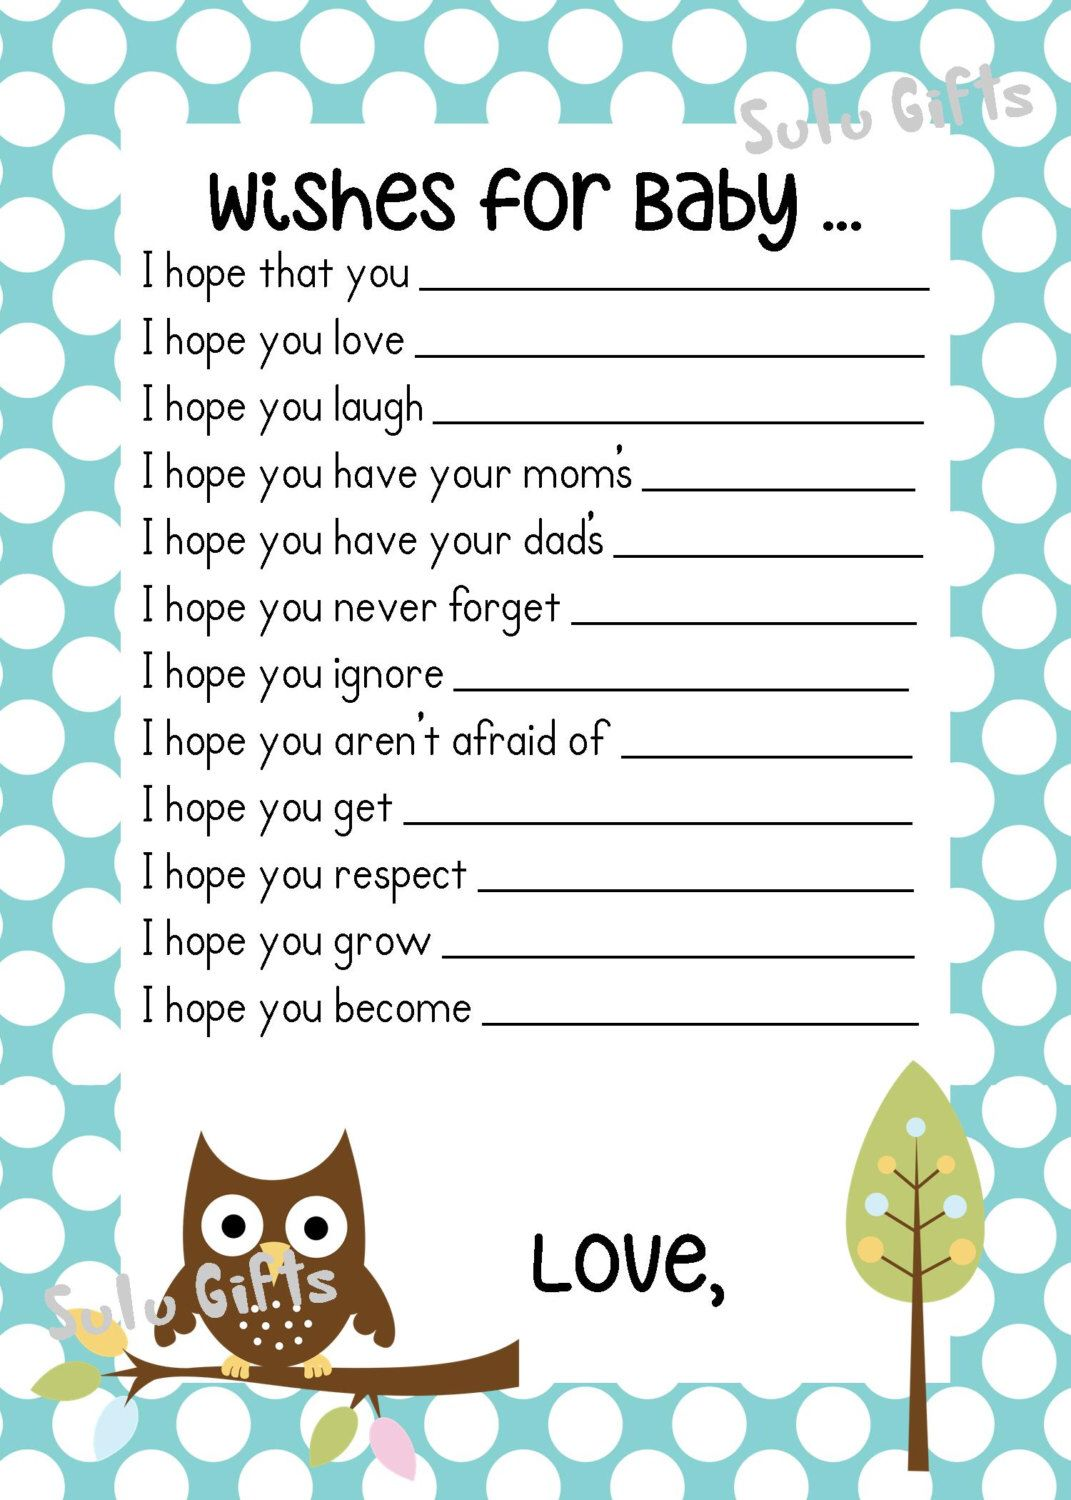 Sale Baby Boy Baby Owl Shower Game Wishes For Baby Advice Cards